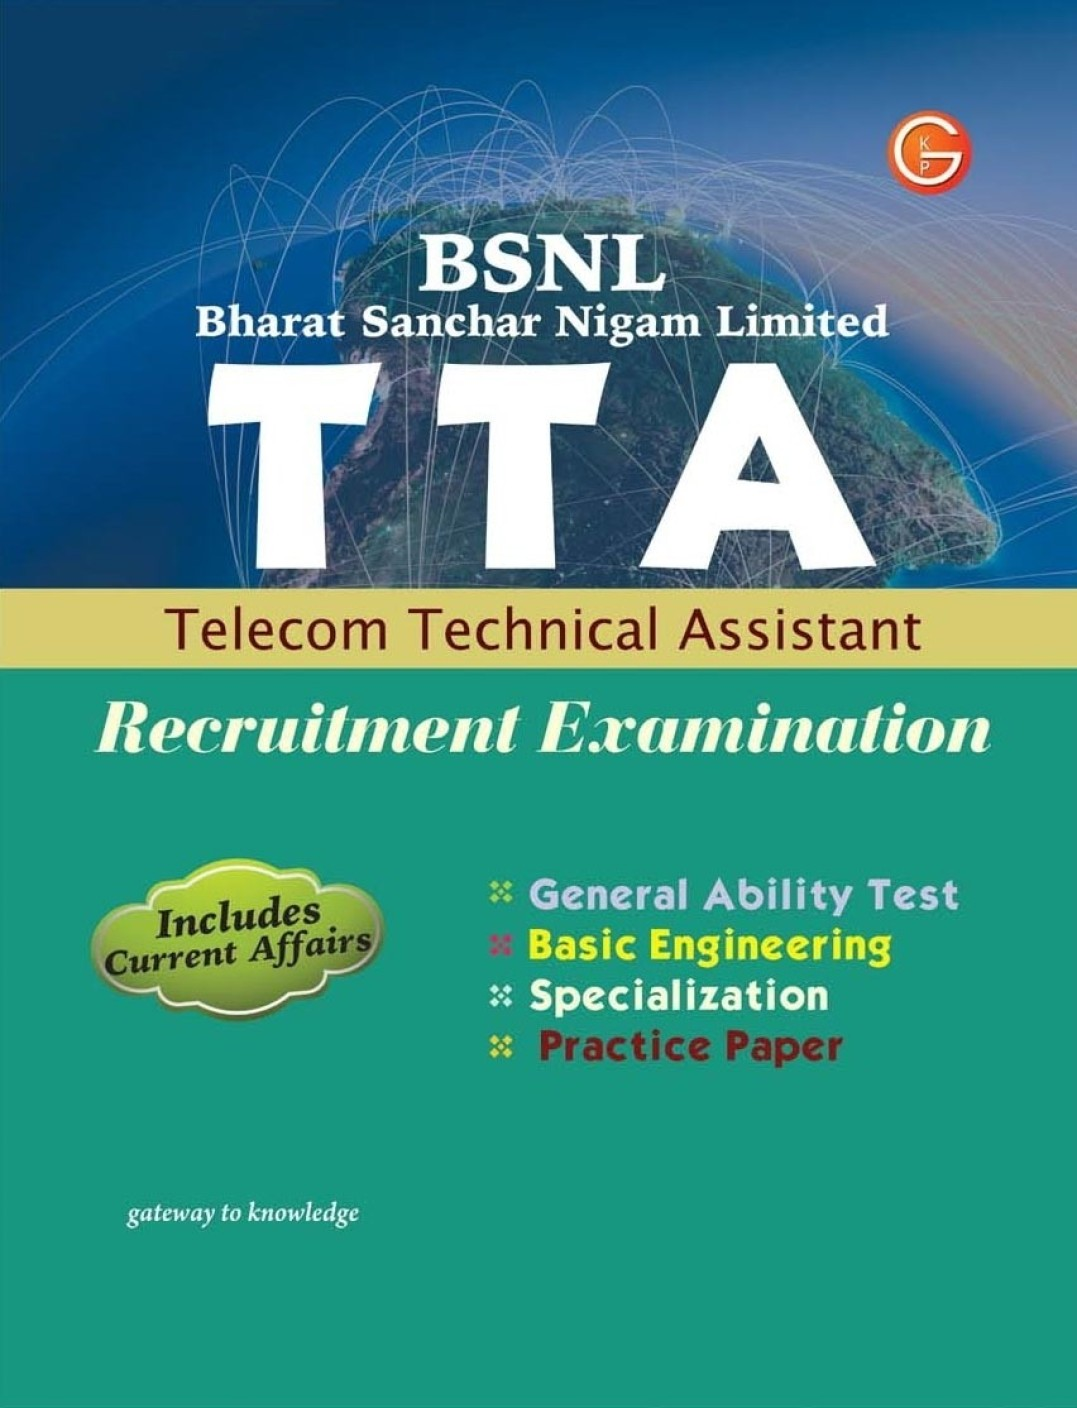 BSNL TTA STUDY MATERIAL PDF - thecarillon.org